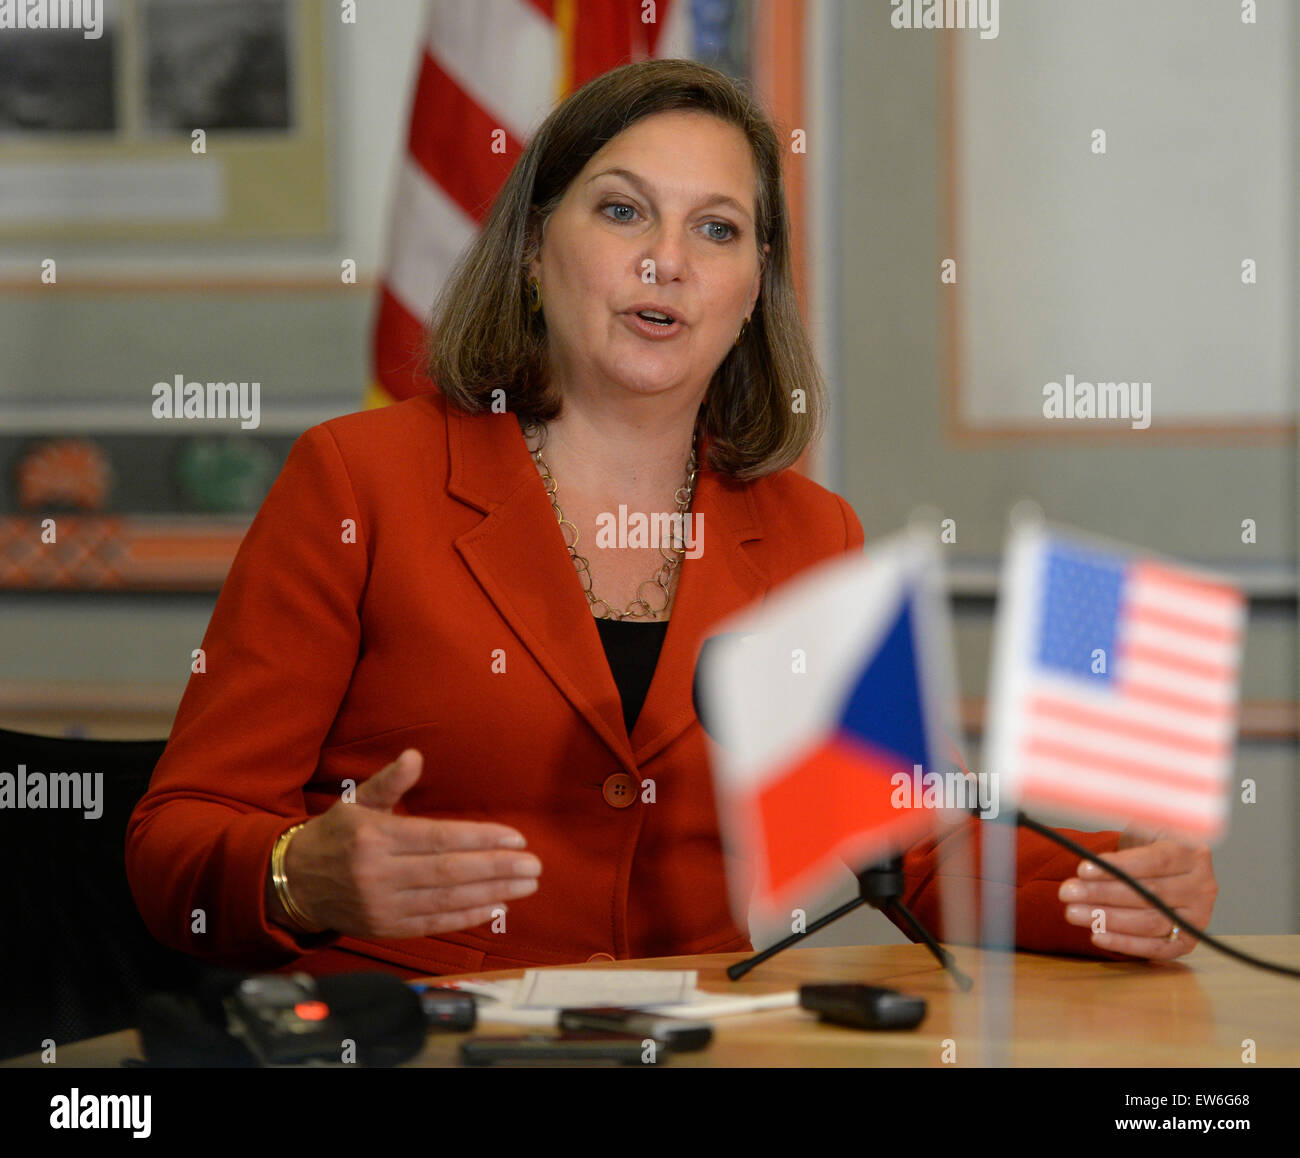 U.S. Assistant Secretary of State for European and Eurasian Affairs Victoria Nuland speaks to media as she attends - Stock Image